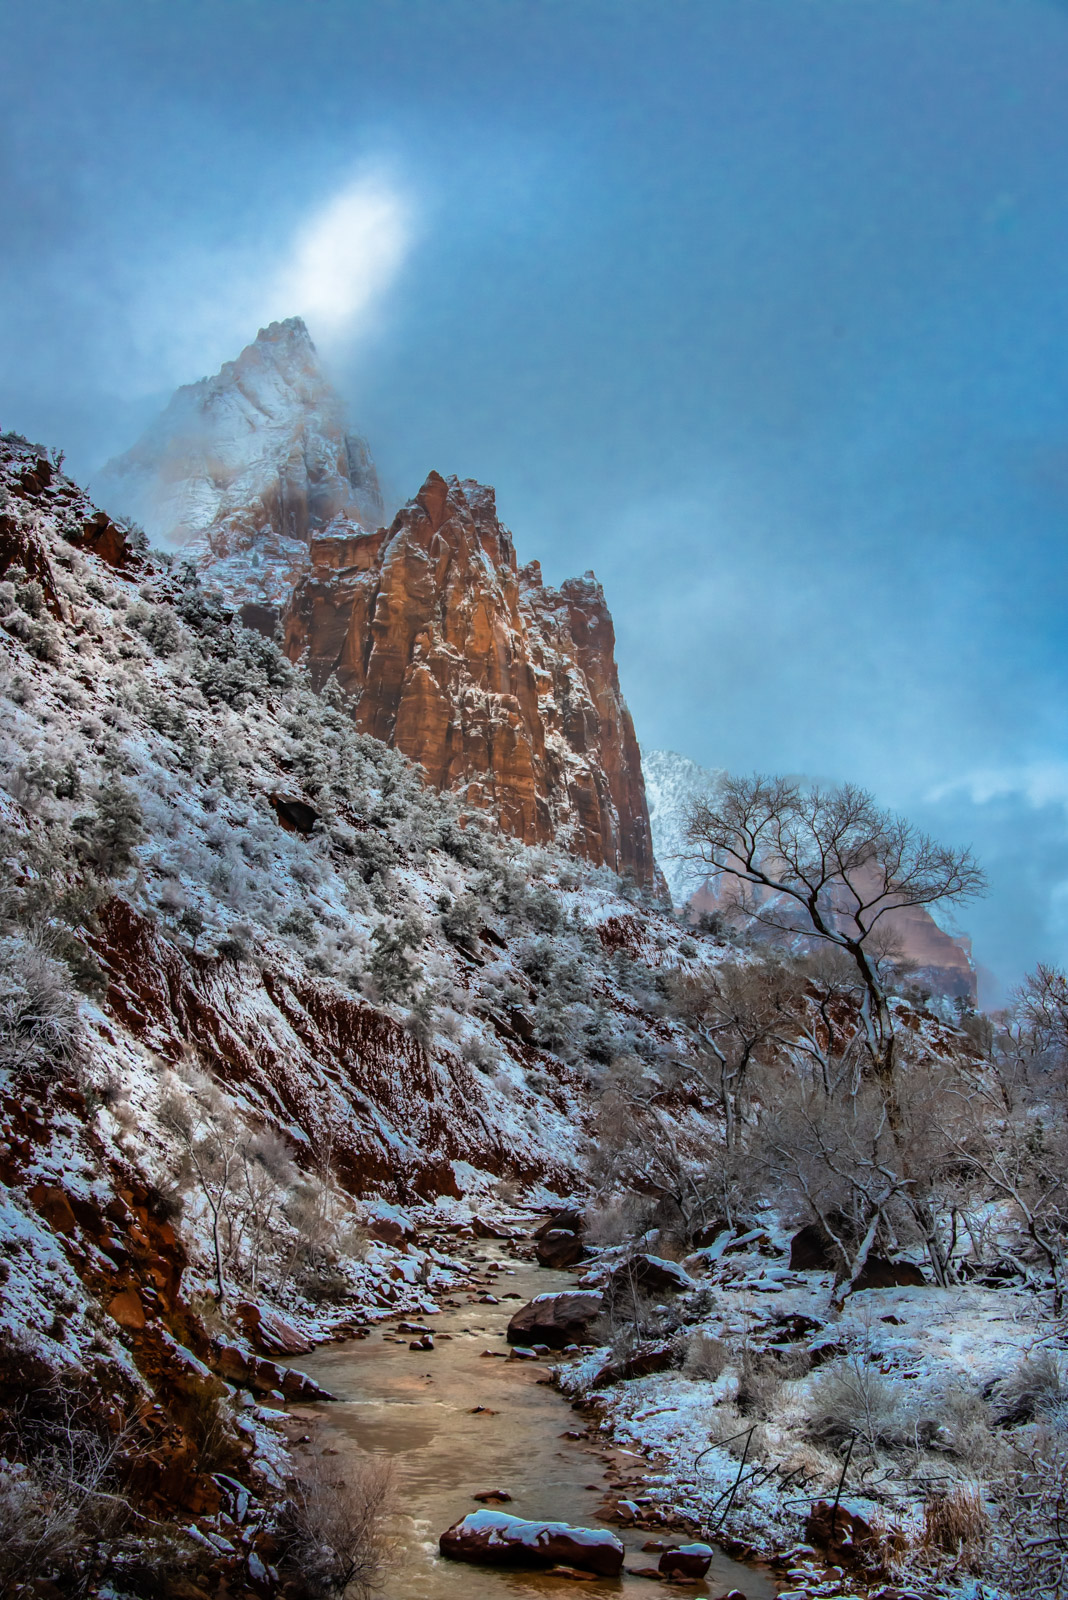 Limited Edition of 50 Exclusive high-resolution Museum Quality Fine Art Photography Prints of Zions light beam in the American...